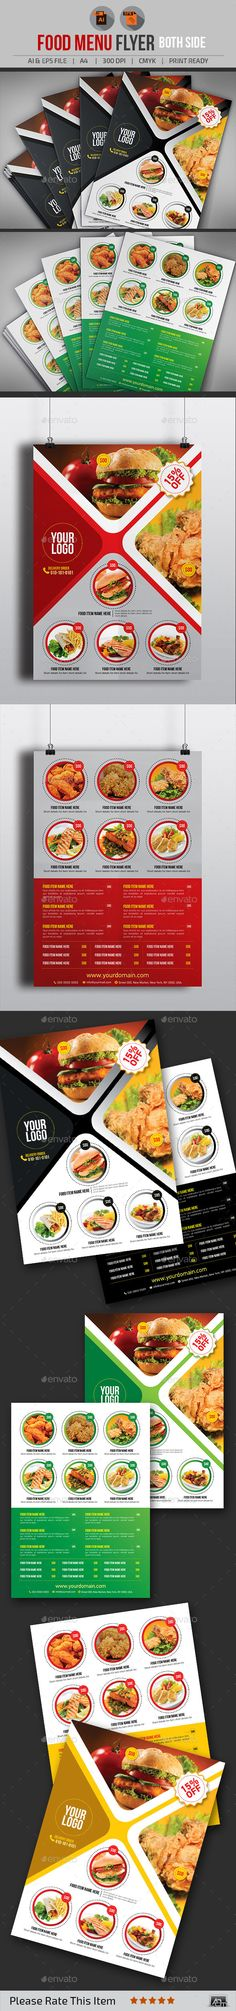 Free Restaurant Menu / Flyer Psd Template | Free Flyers